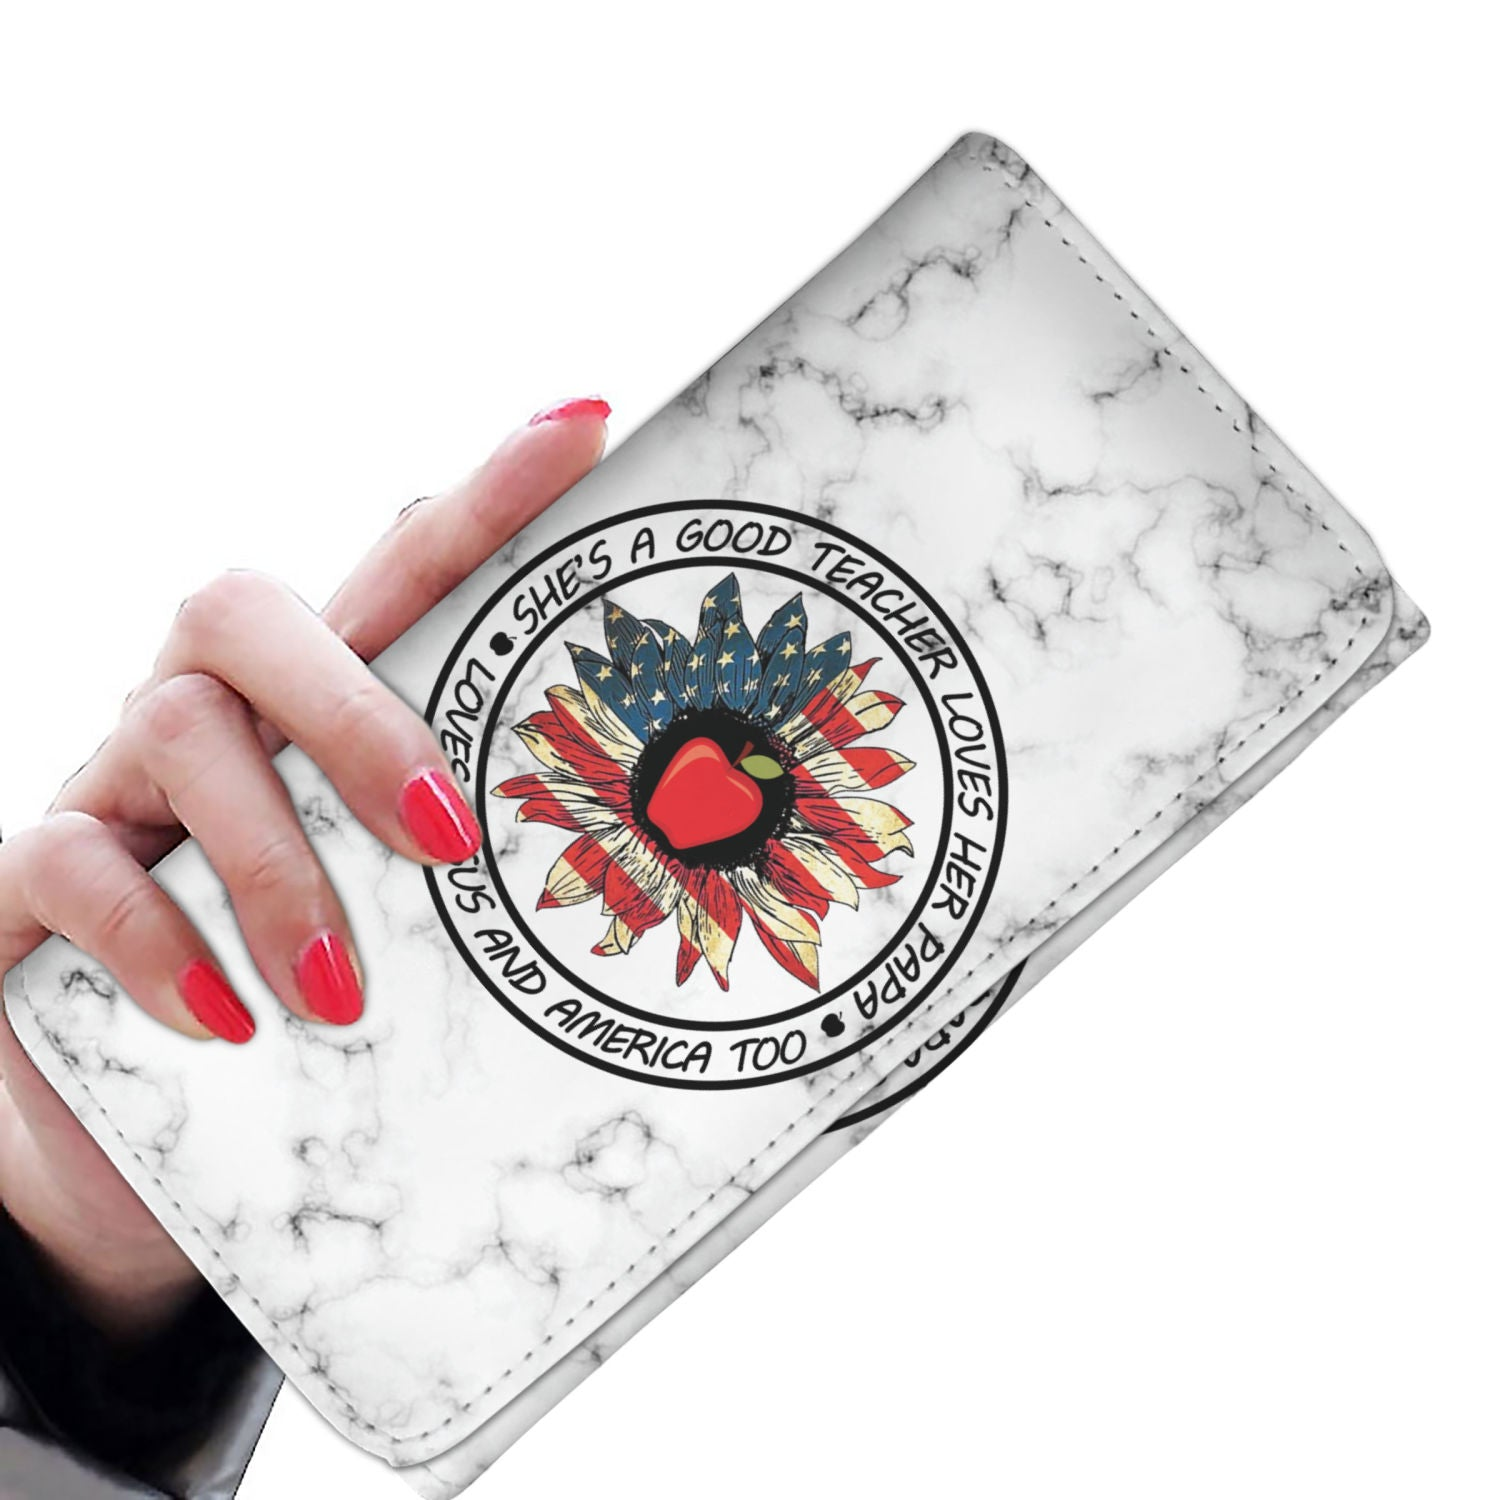 VIRA women's wallet for awesome teachers